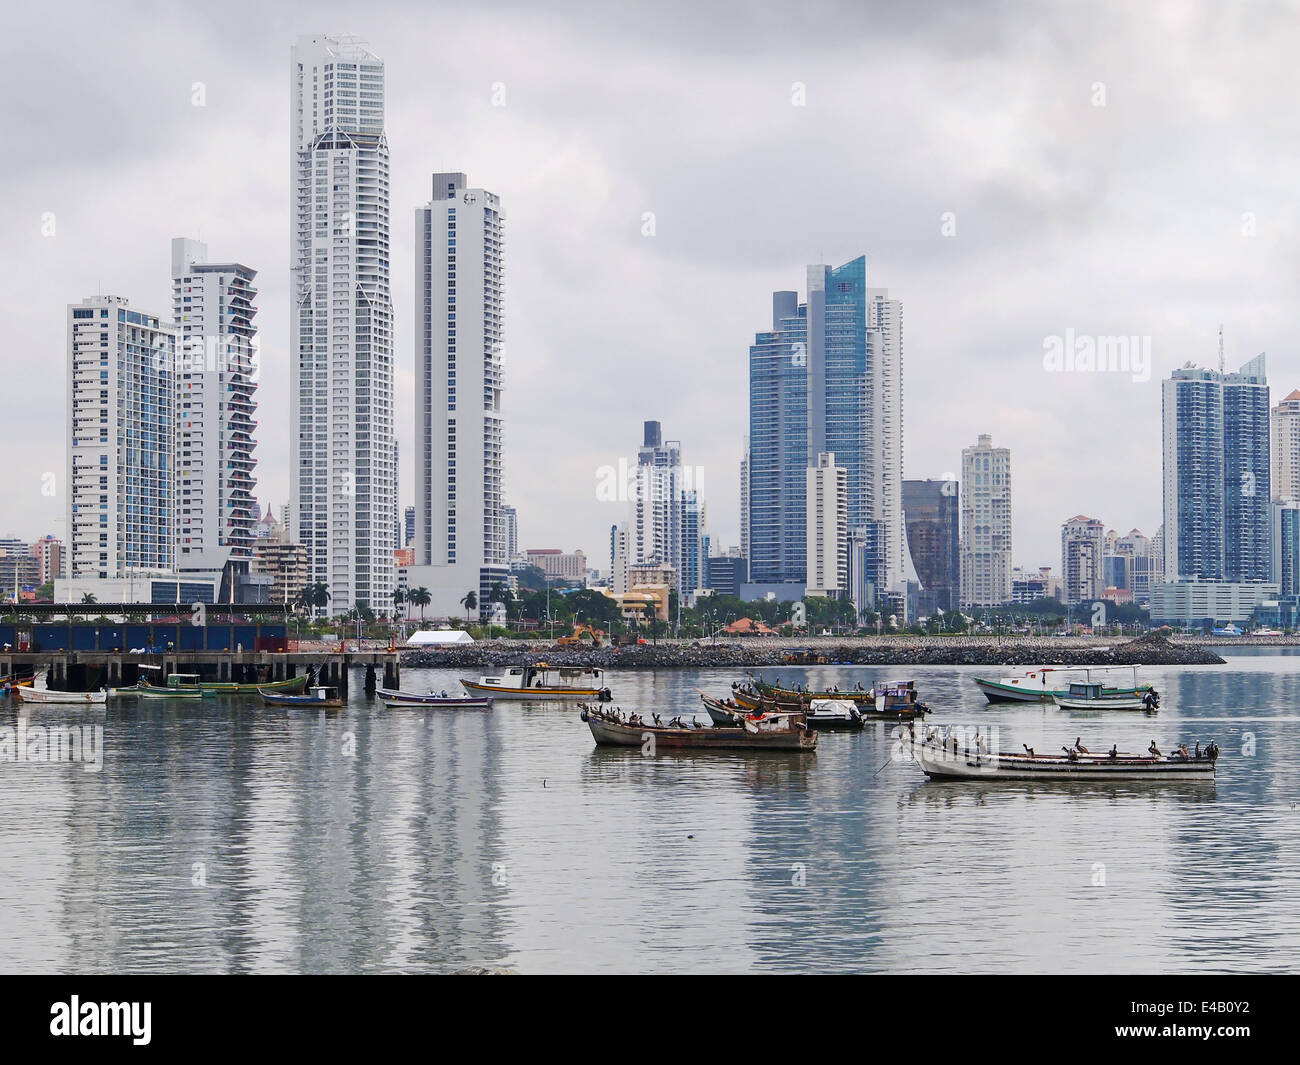 Fishing boats anchored with skyscrapers of Panama City, Pacific coast, Central America - Stock Image